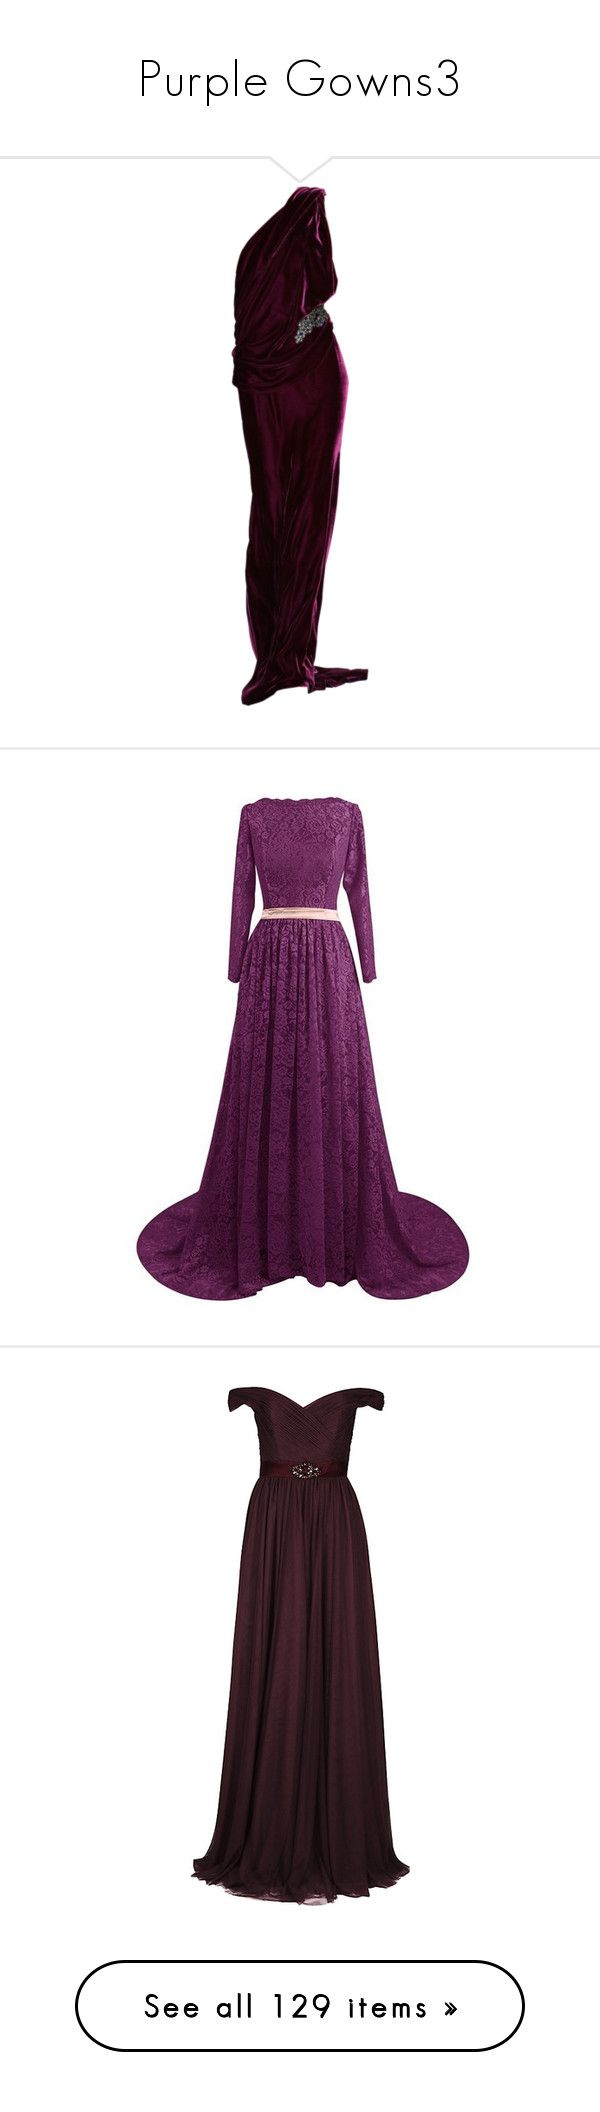 """""""Purple Gowns3"""" by kingcrimson ❤ liked on Polyvore featuring dresses, gowns, doll parts, black gown, purple lace dresses, lace gown, prom ball gowns, long sleeve prom dresses, purple gown and long dresses"""